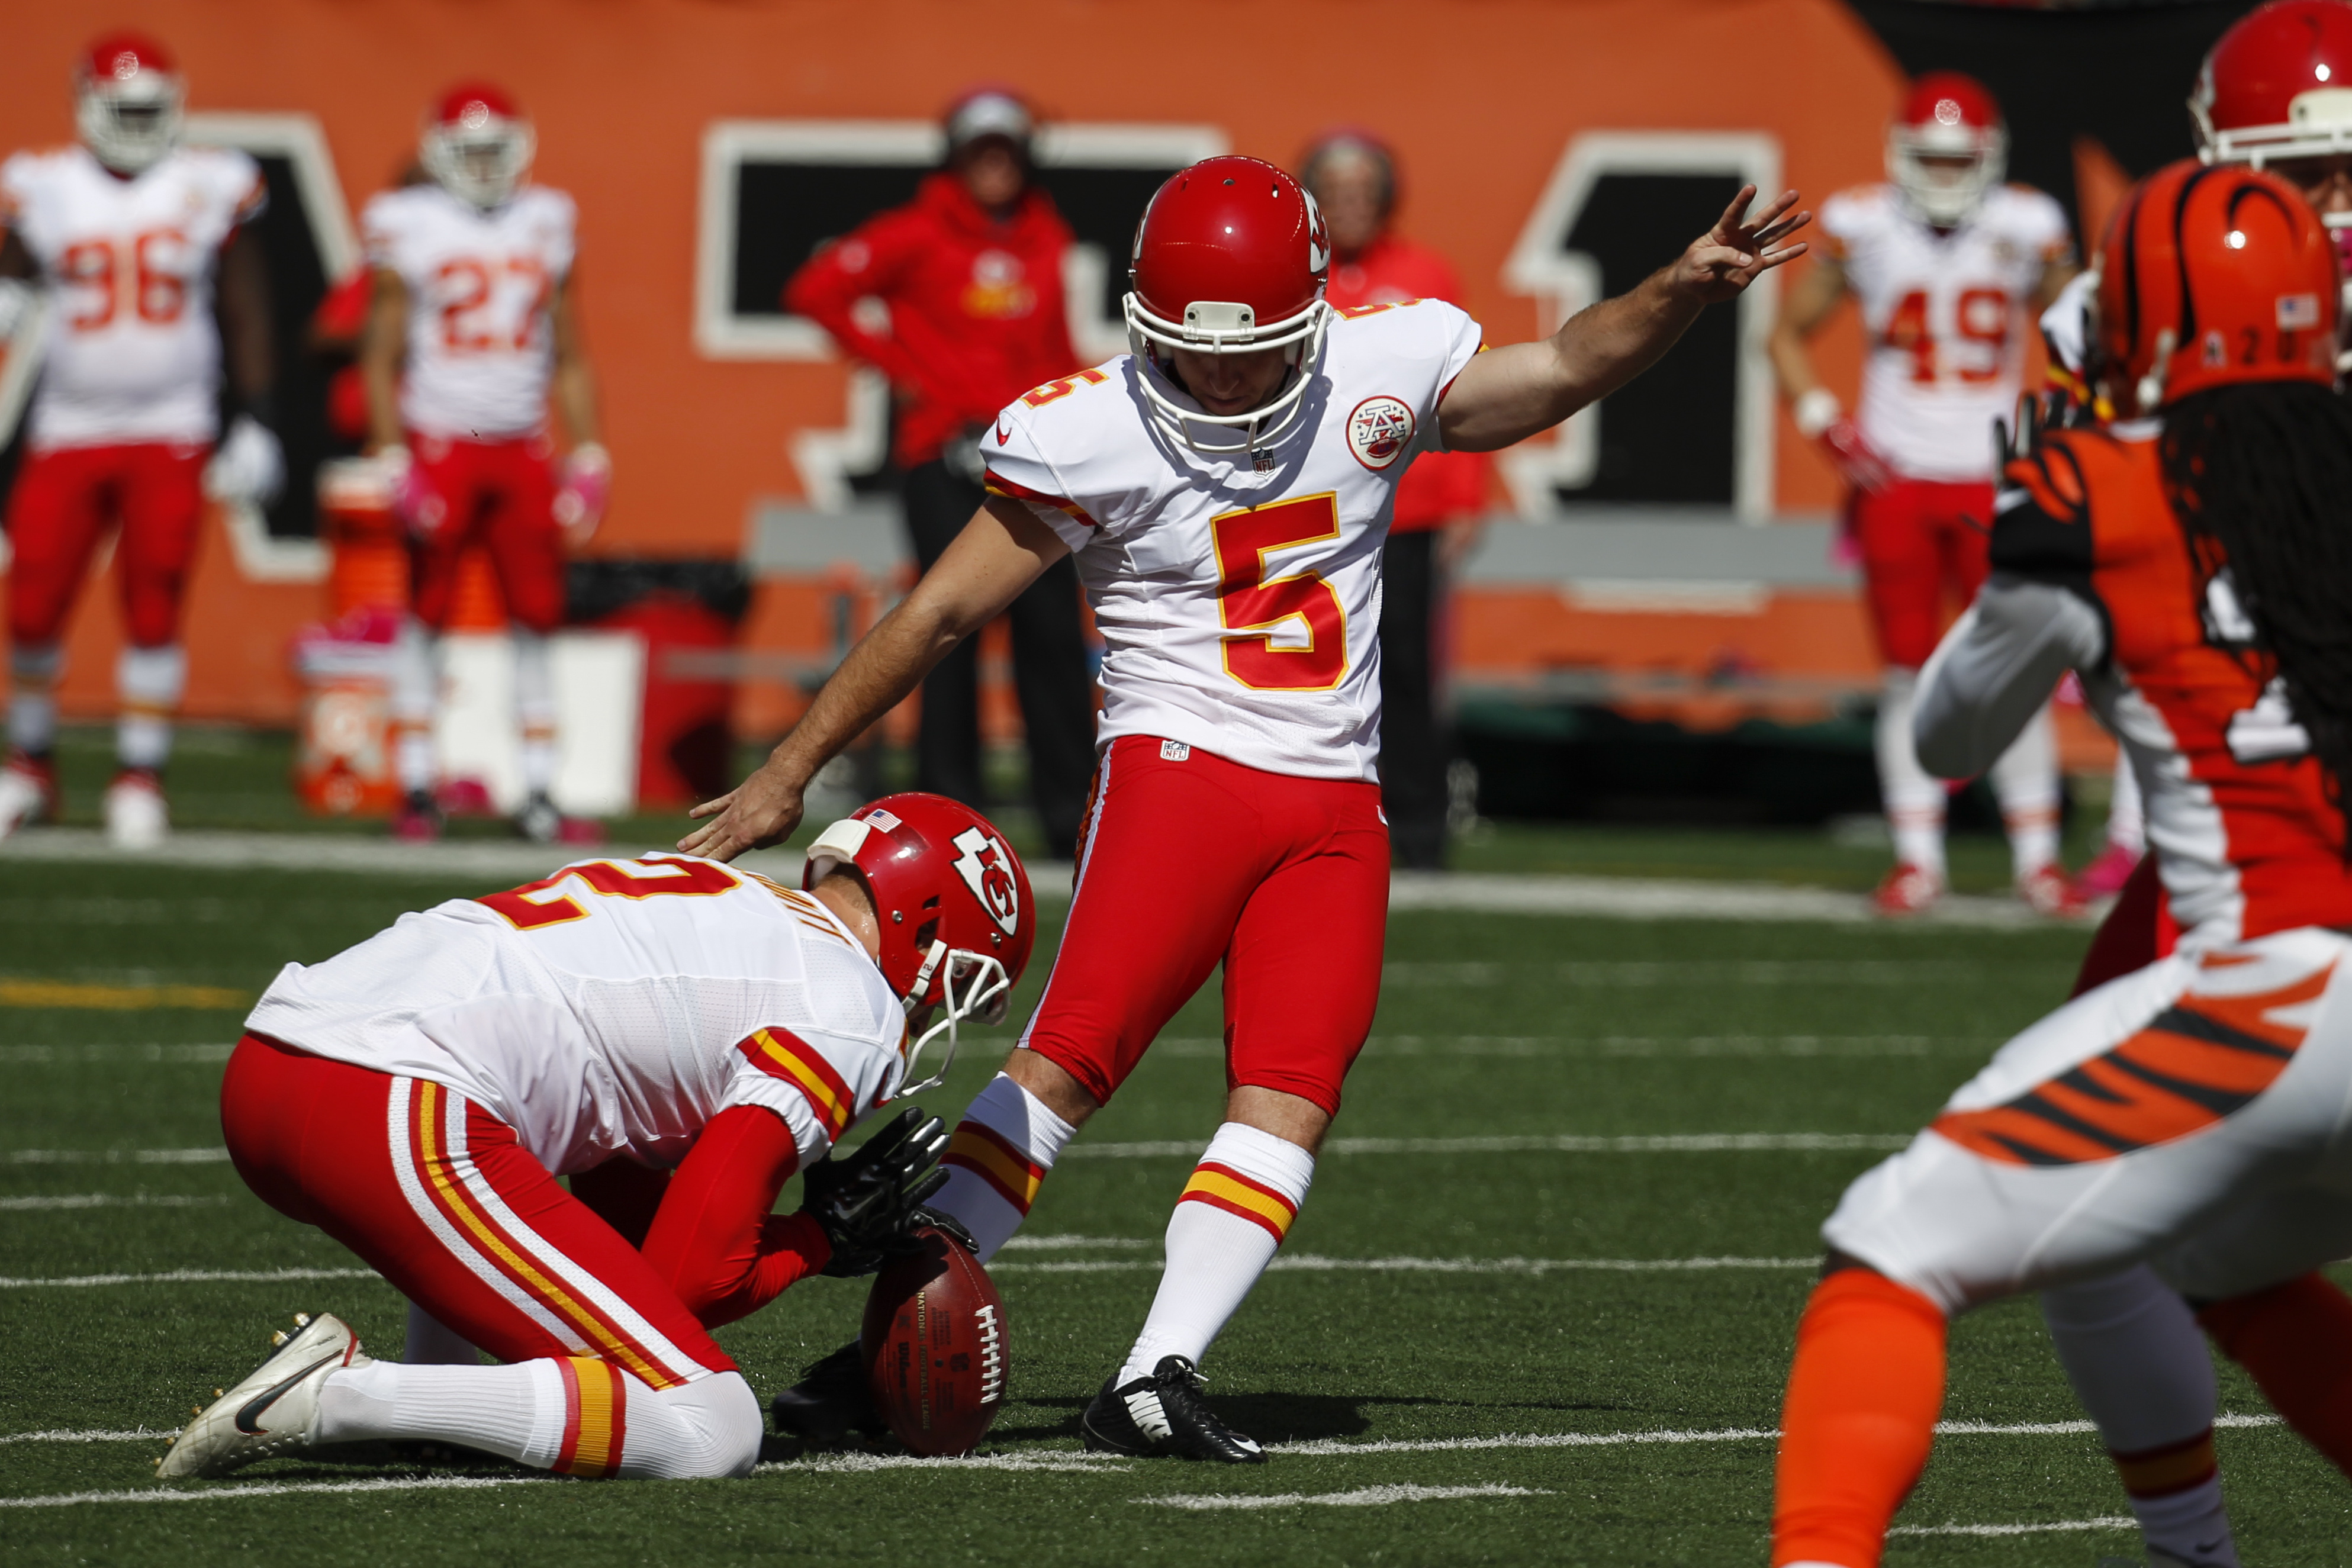 Kansas City Chiefs kicker Cairo Santos (5) boots a field goal in the first half of an NFL football game against the Cincinnati Bengals, Sunday, Oct. 4, 2015, in Cincinnati. (AP Photo/Frank Victores)